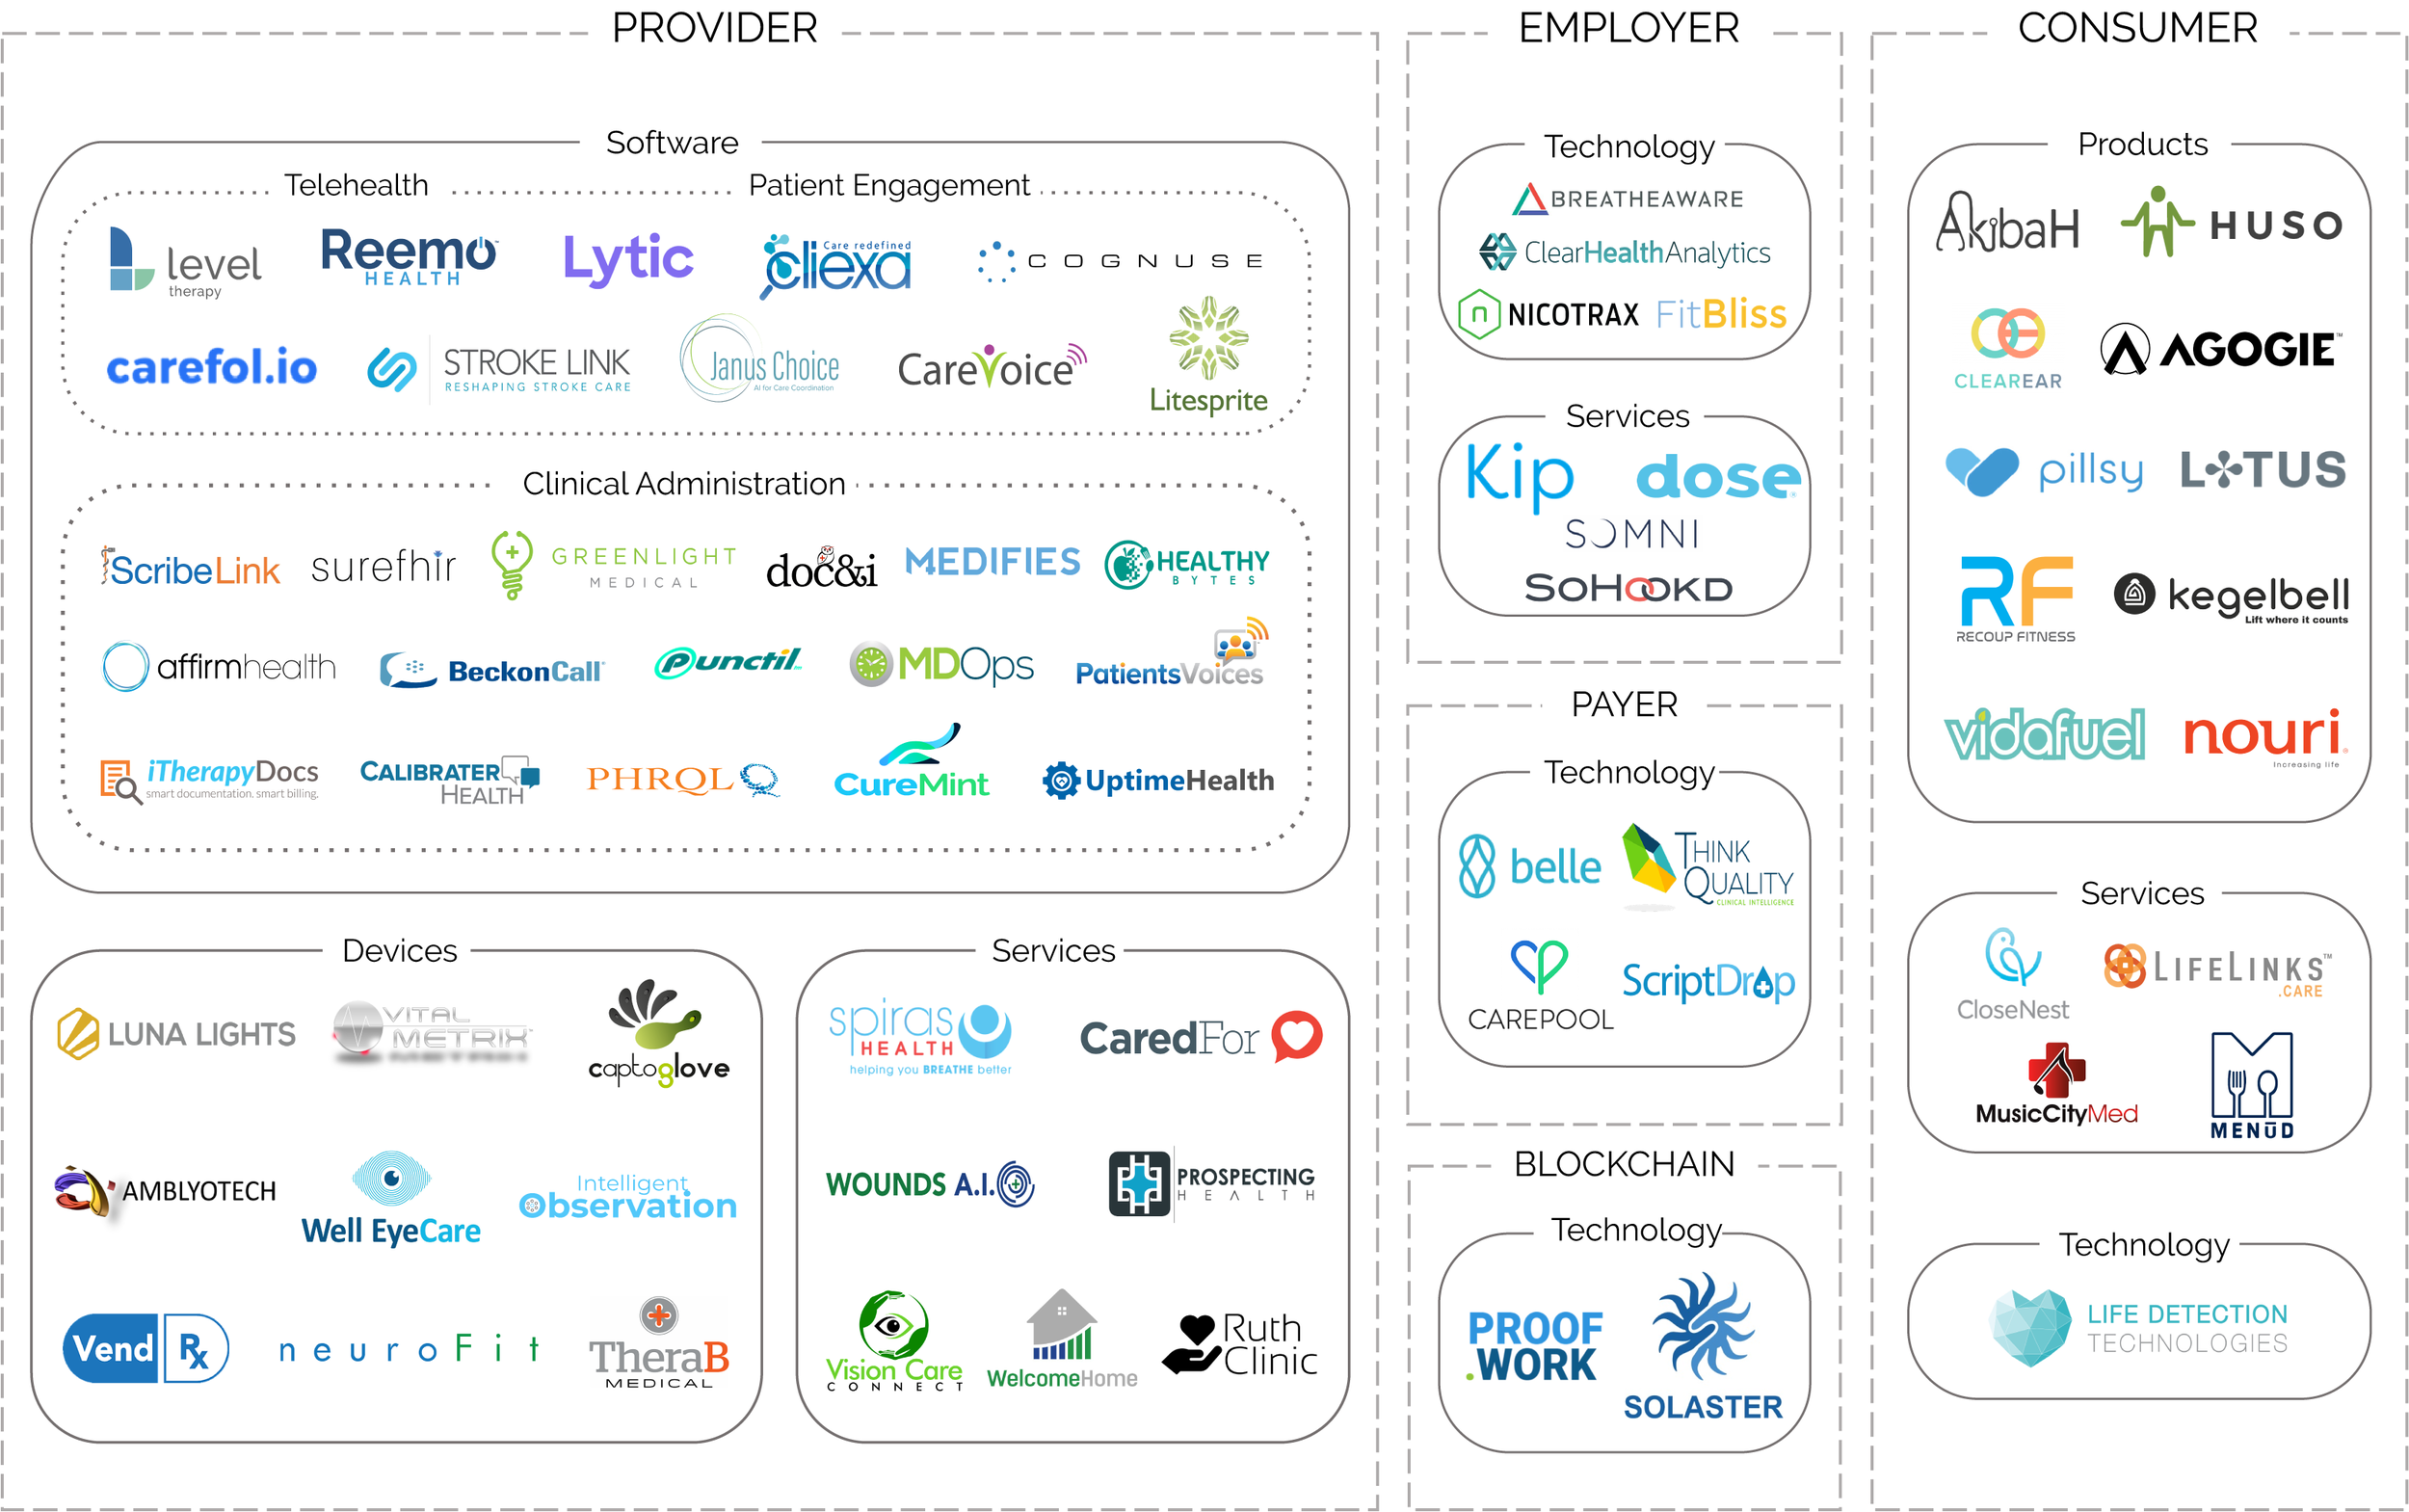 Portfolio Industry Map by Products_8.5x11.png